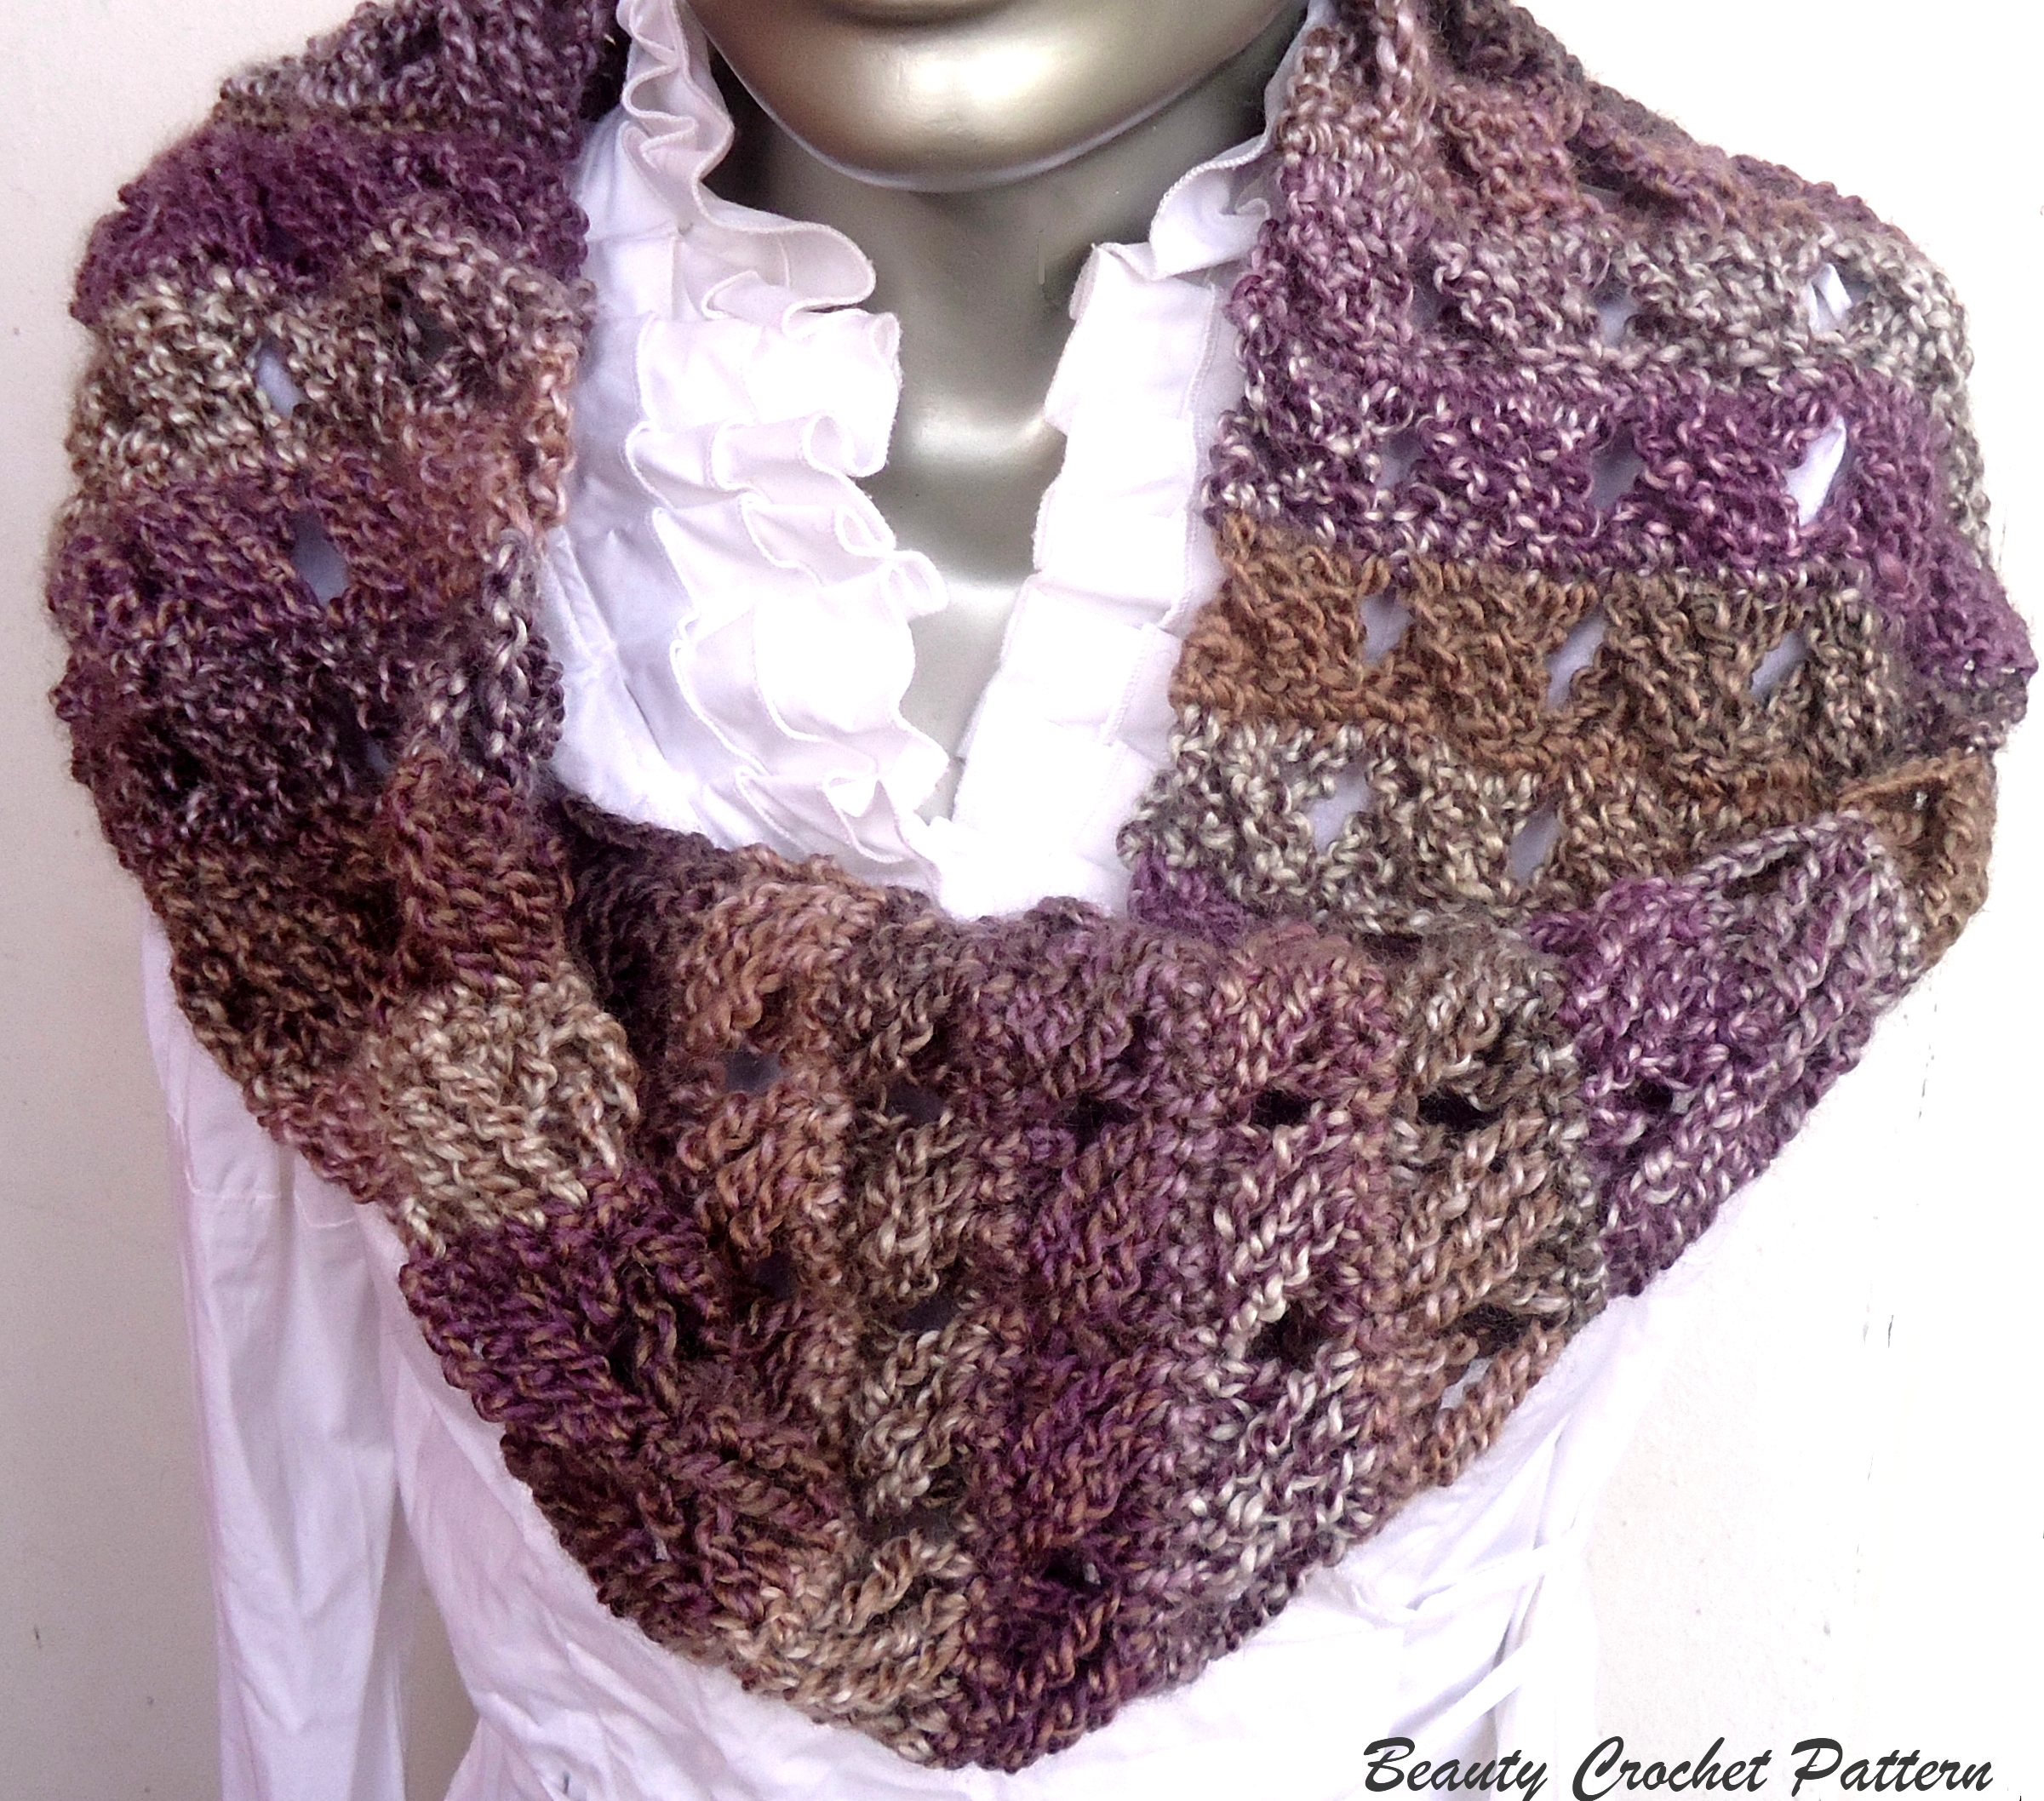 Crochet Pattern Scarf Cow, Cowl Crochet Pattern, Neckwarmer Crochet ...